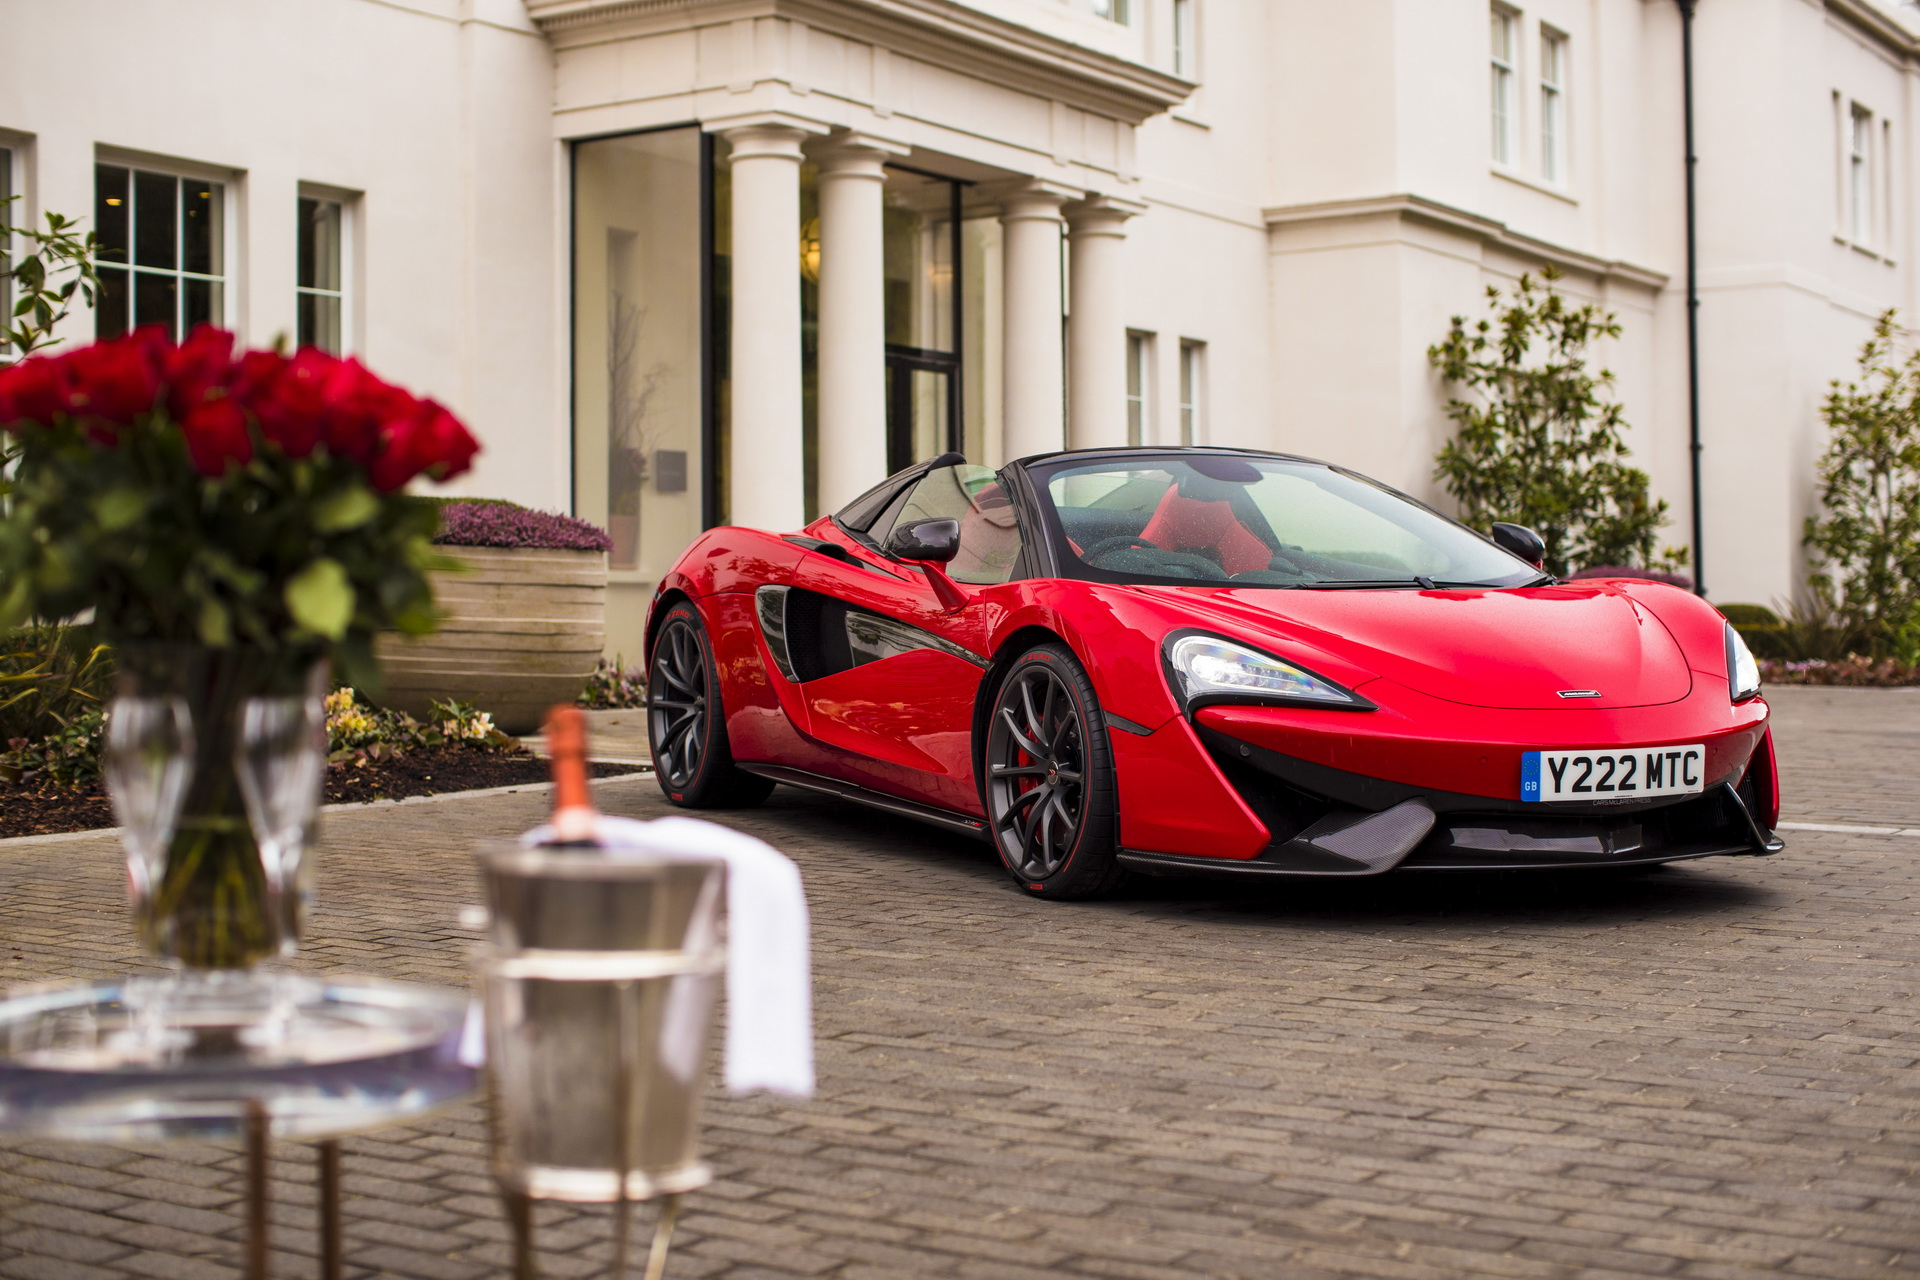 mclaren-570s-spider-vermillion-red-2